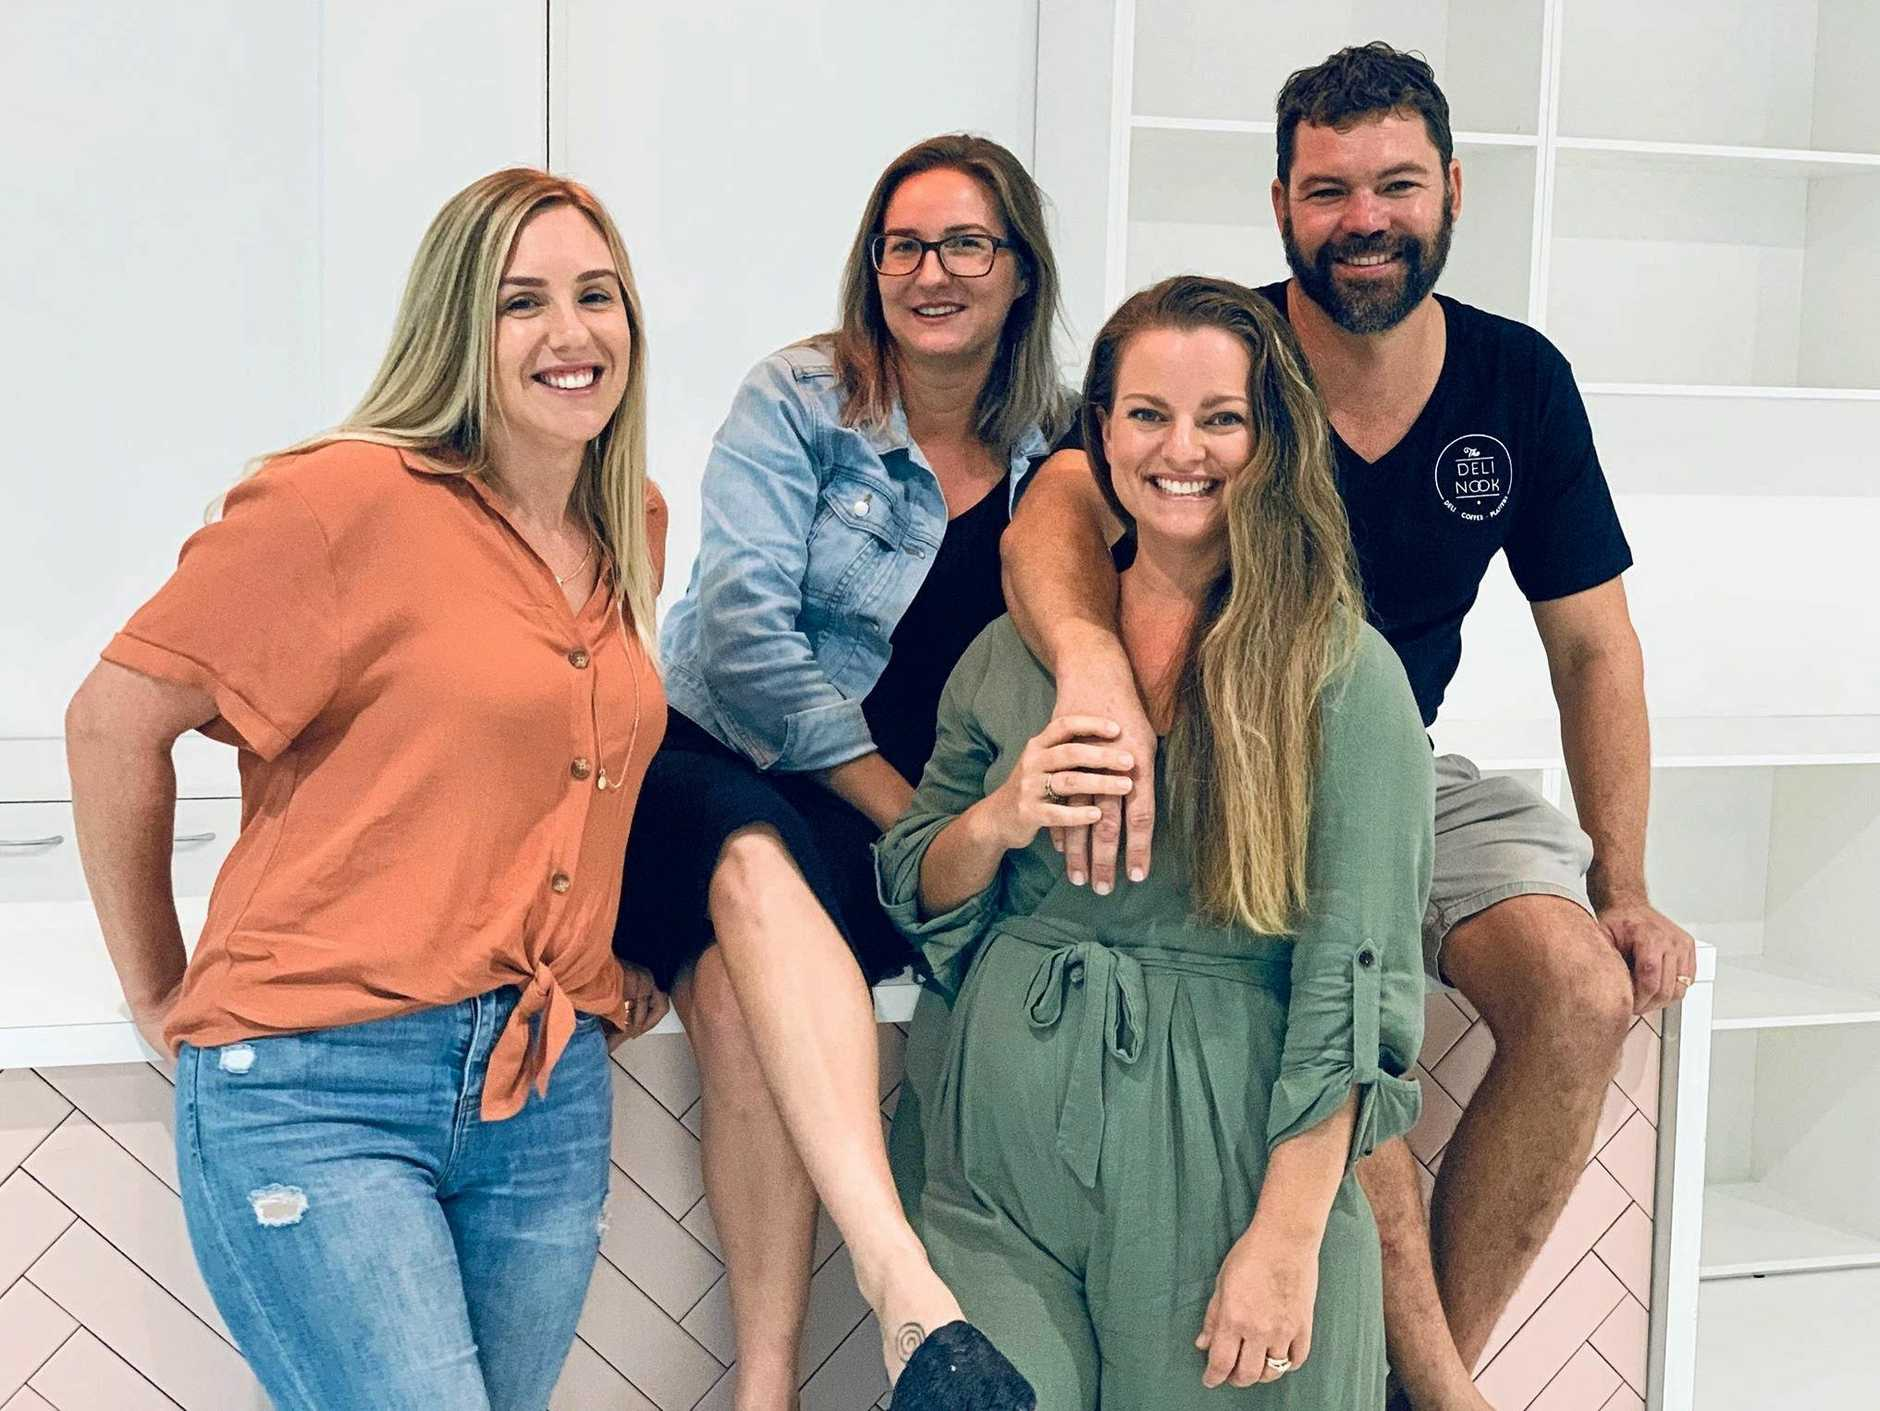 Gypsy and the Bowerbird owners Stephanie Hain (left) and Claire Hammill (second from left) with owners of The Deli Nook Patrice and Simon Zarzecki (right).